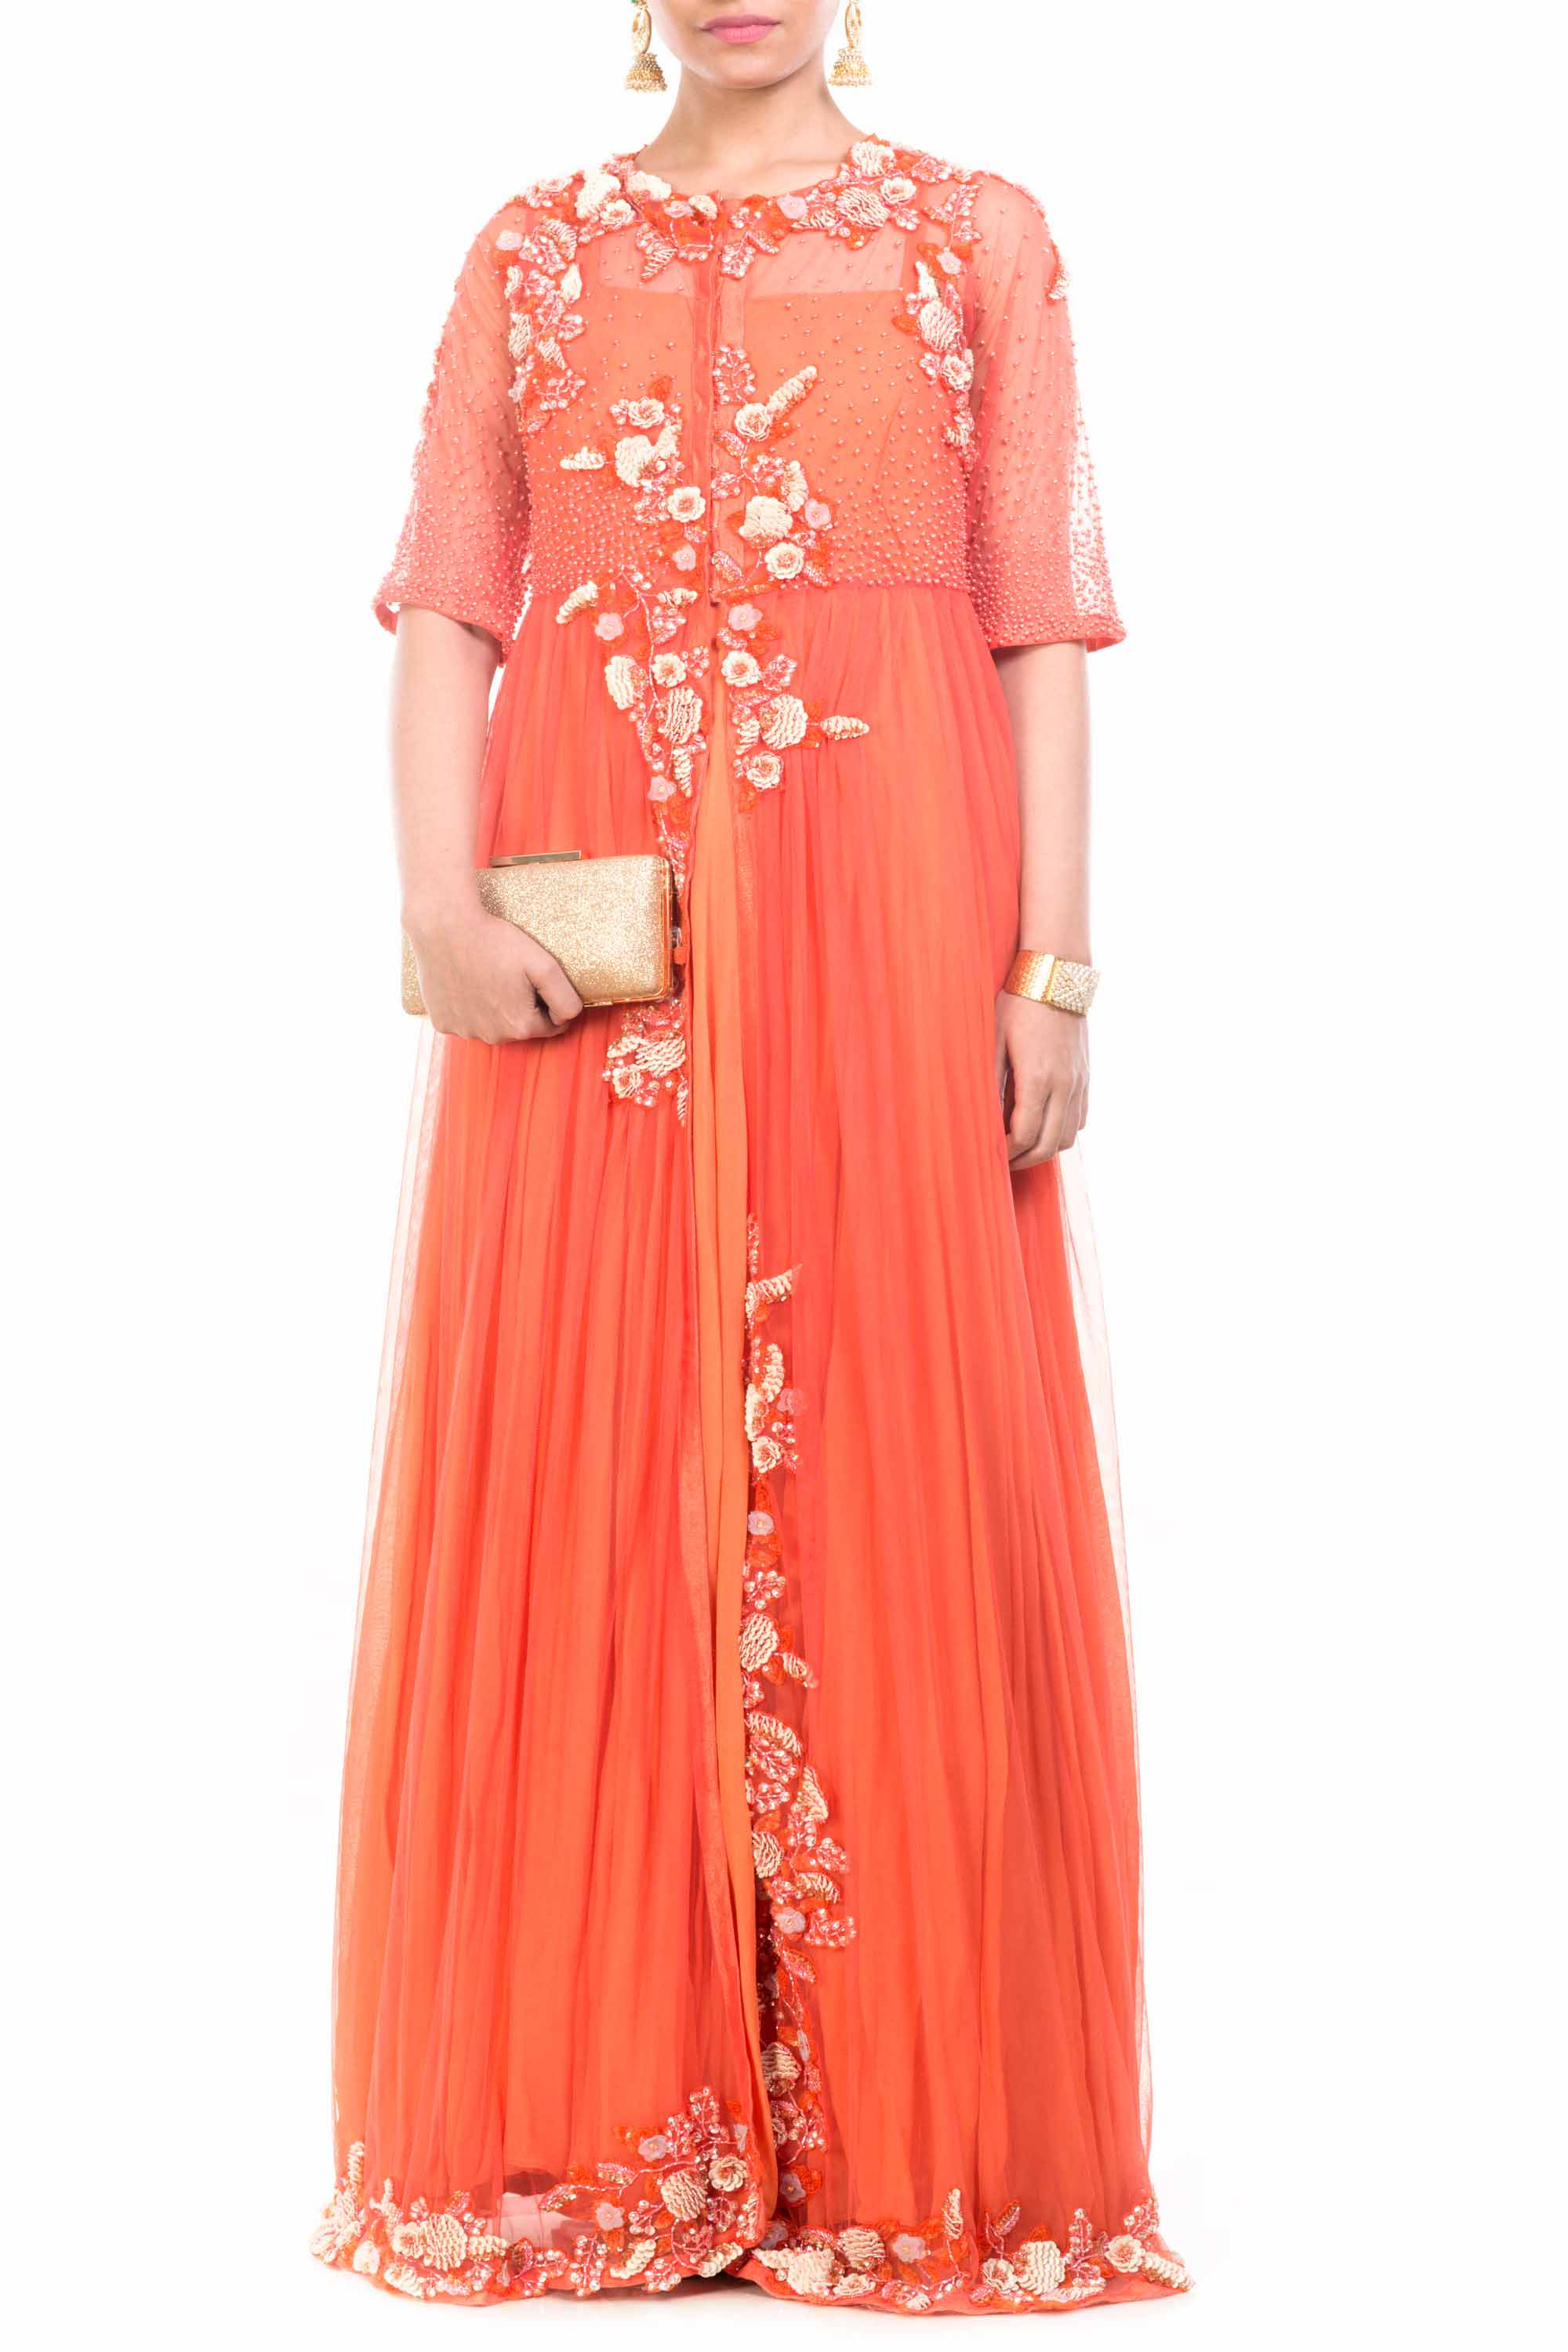 Jacket Style Orange Gown Front